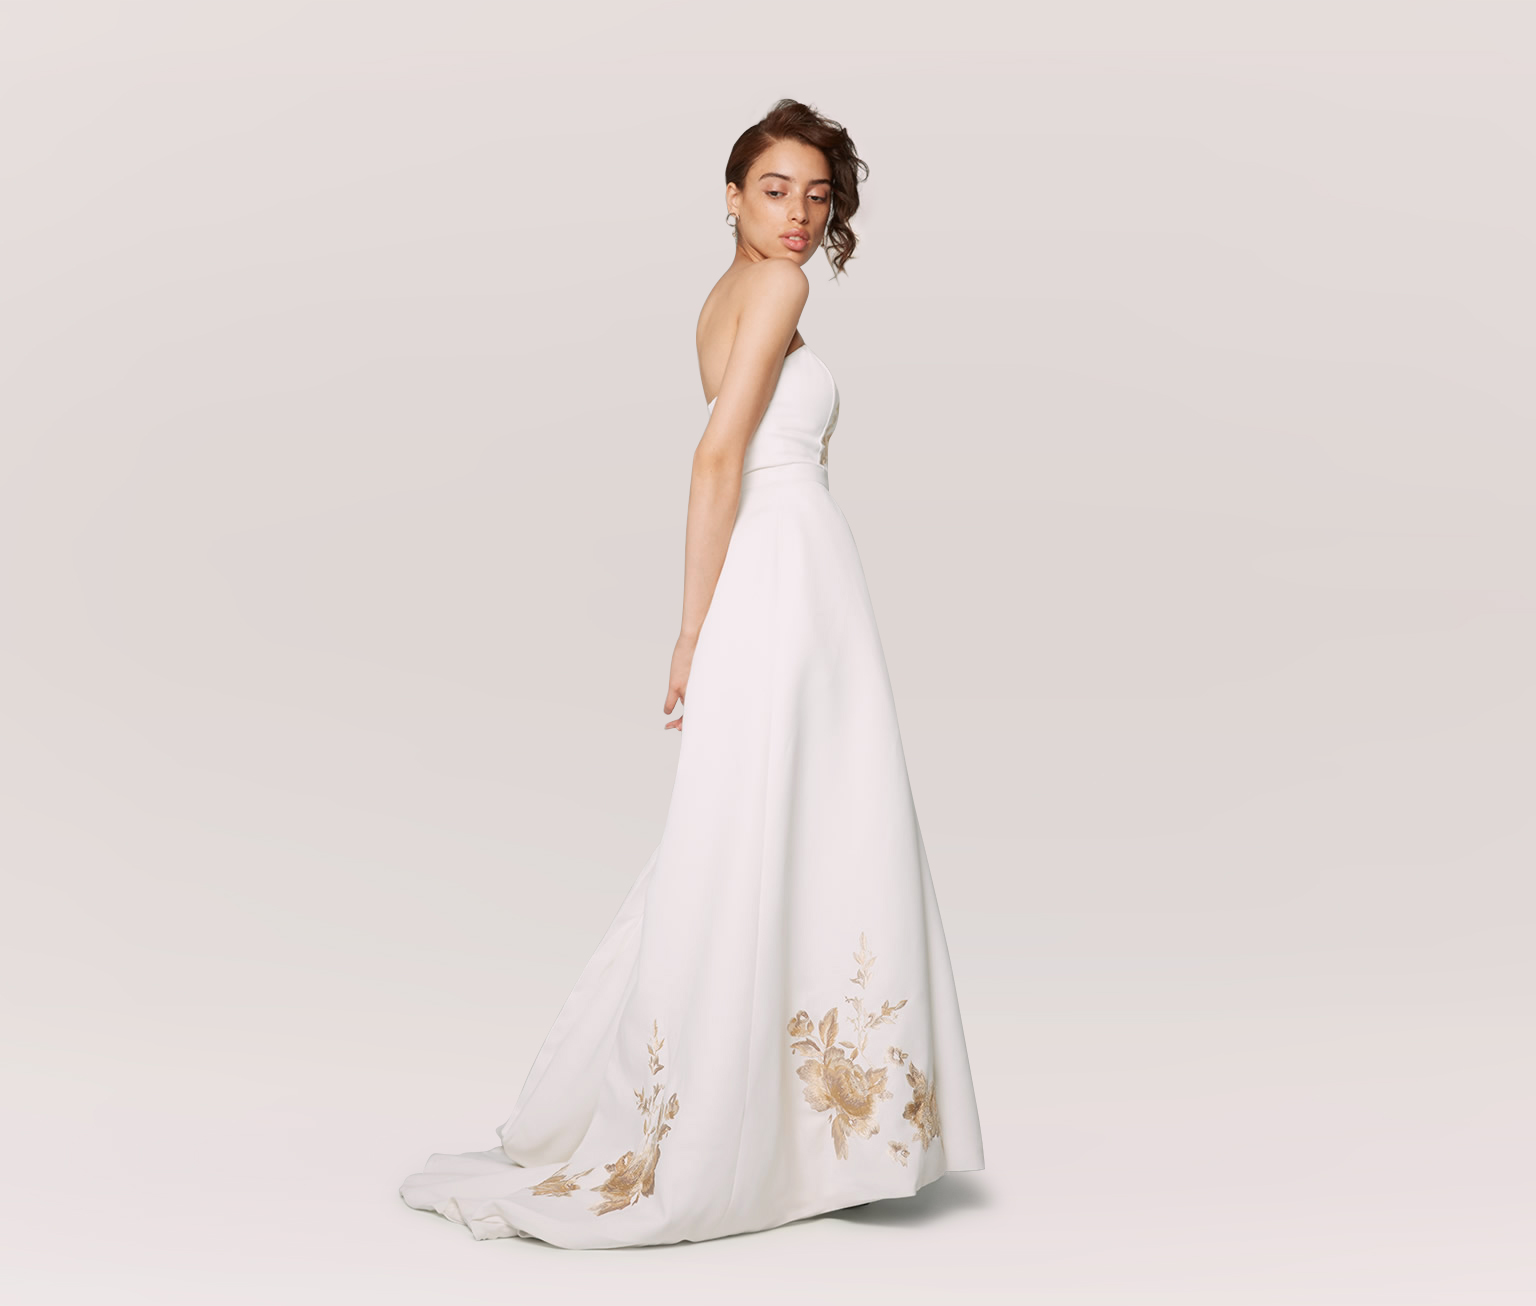 93d0fe004d64 14 Affordable Plus-Size Wedding Dresses That Cost Under $400 ...